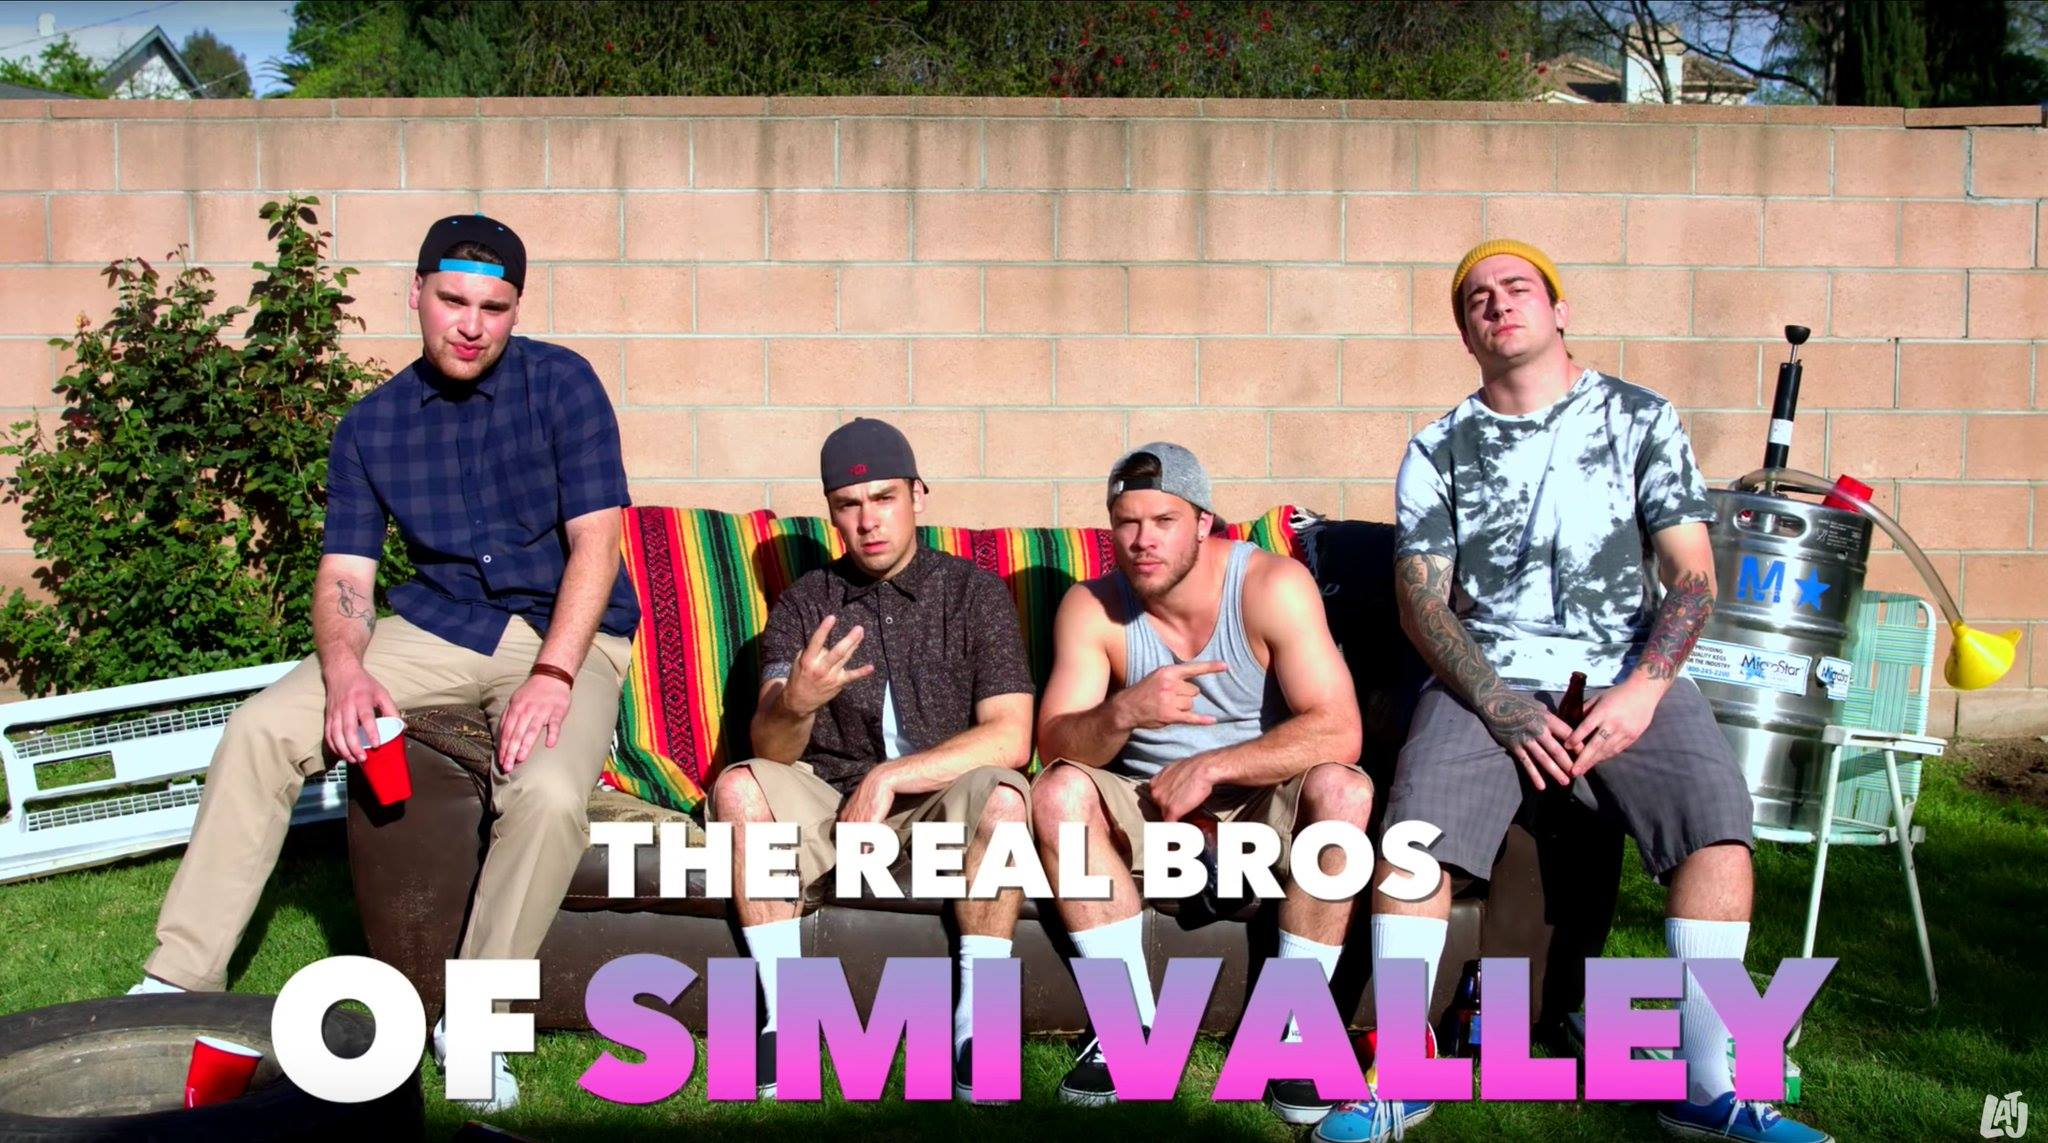 Real Bros of Simi Valley